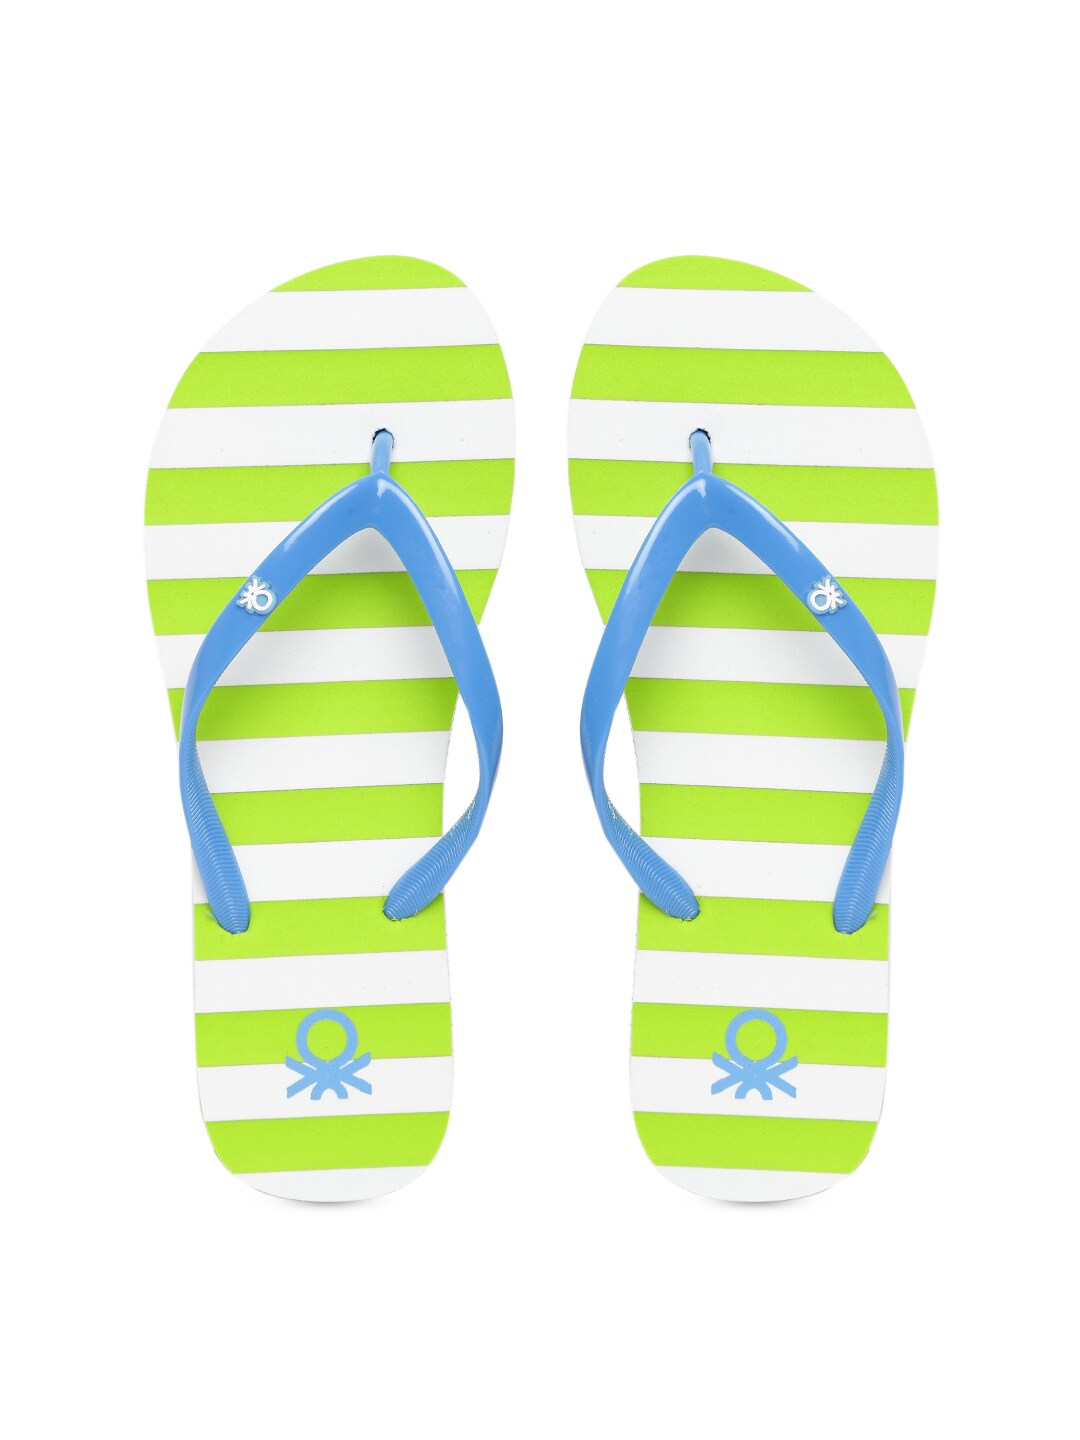 bb7a9a9d65121 Sole United Colors Of United Colors Of Benetton Flip Flops Belts - Buy Sole United  Colors Of United Colors Of Benetton Flip Flops Belts online in India